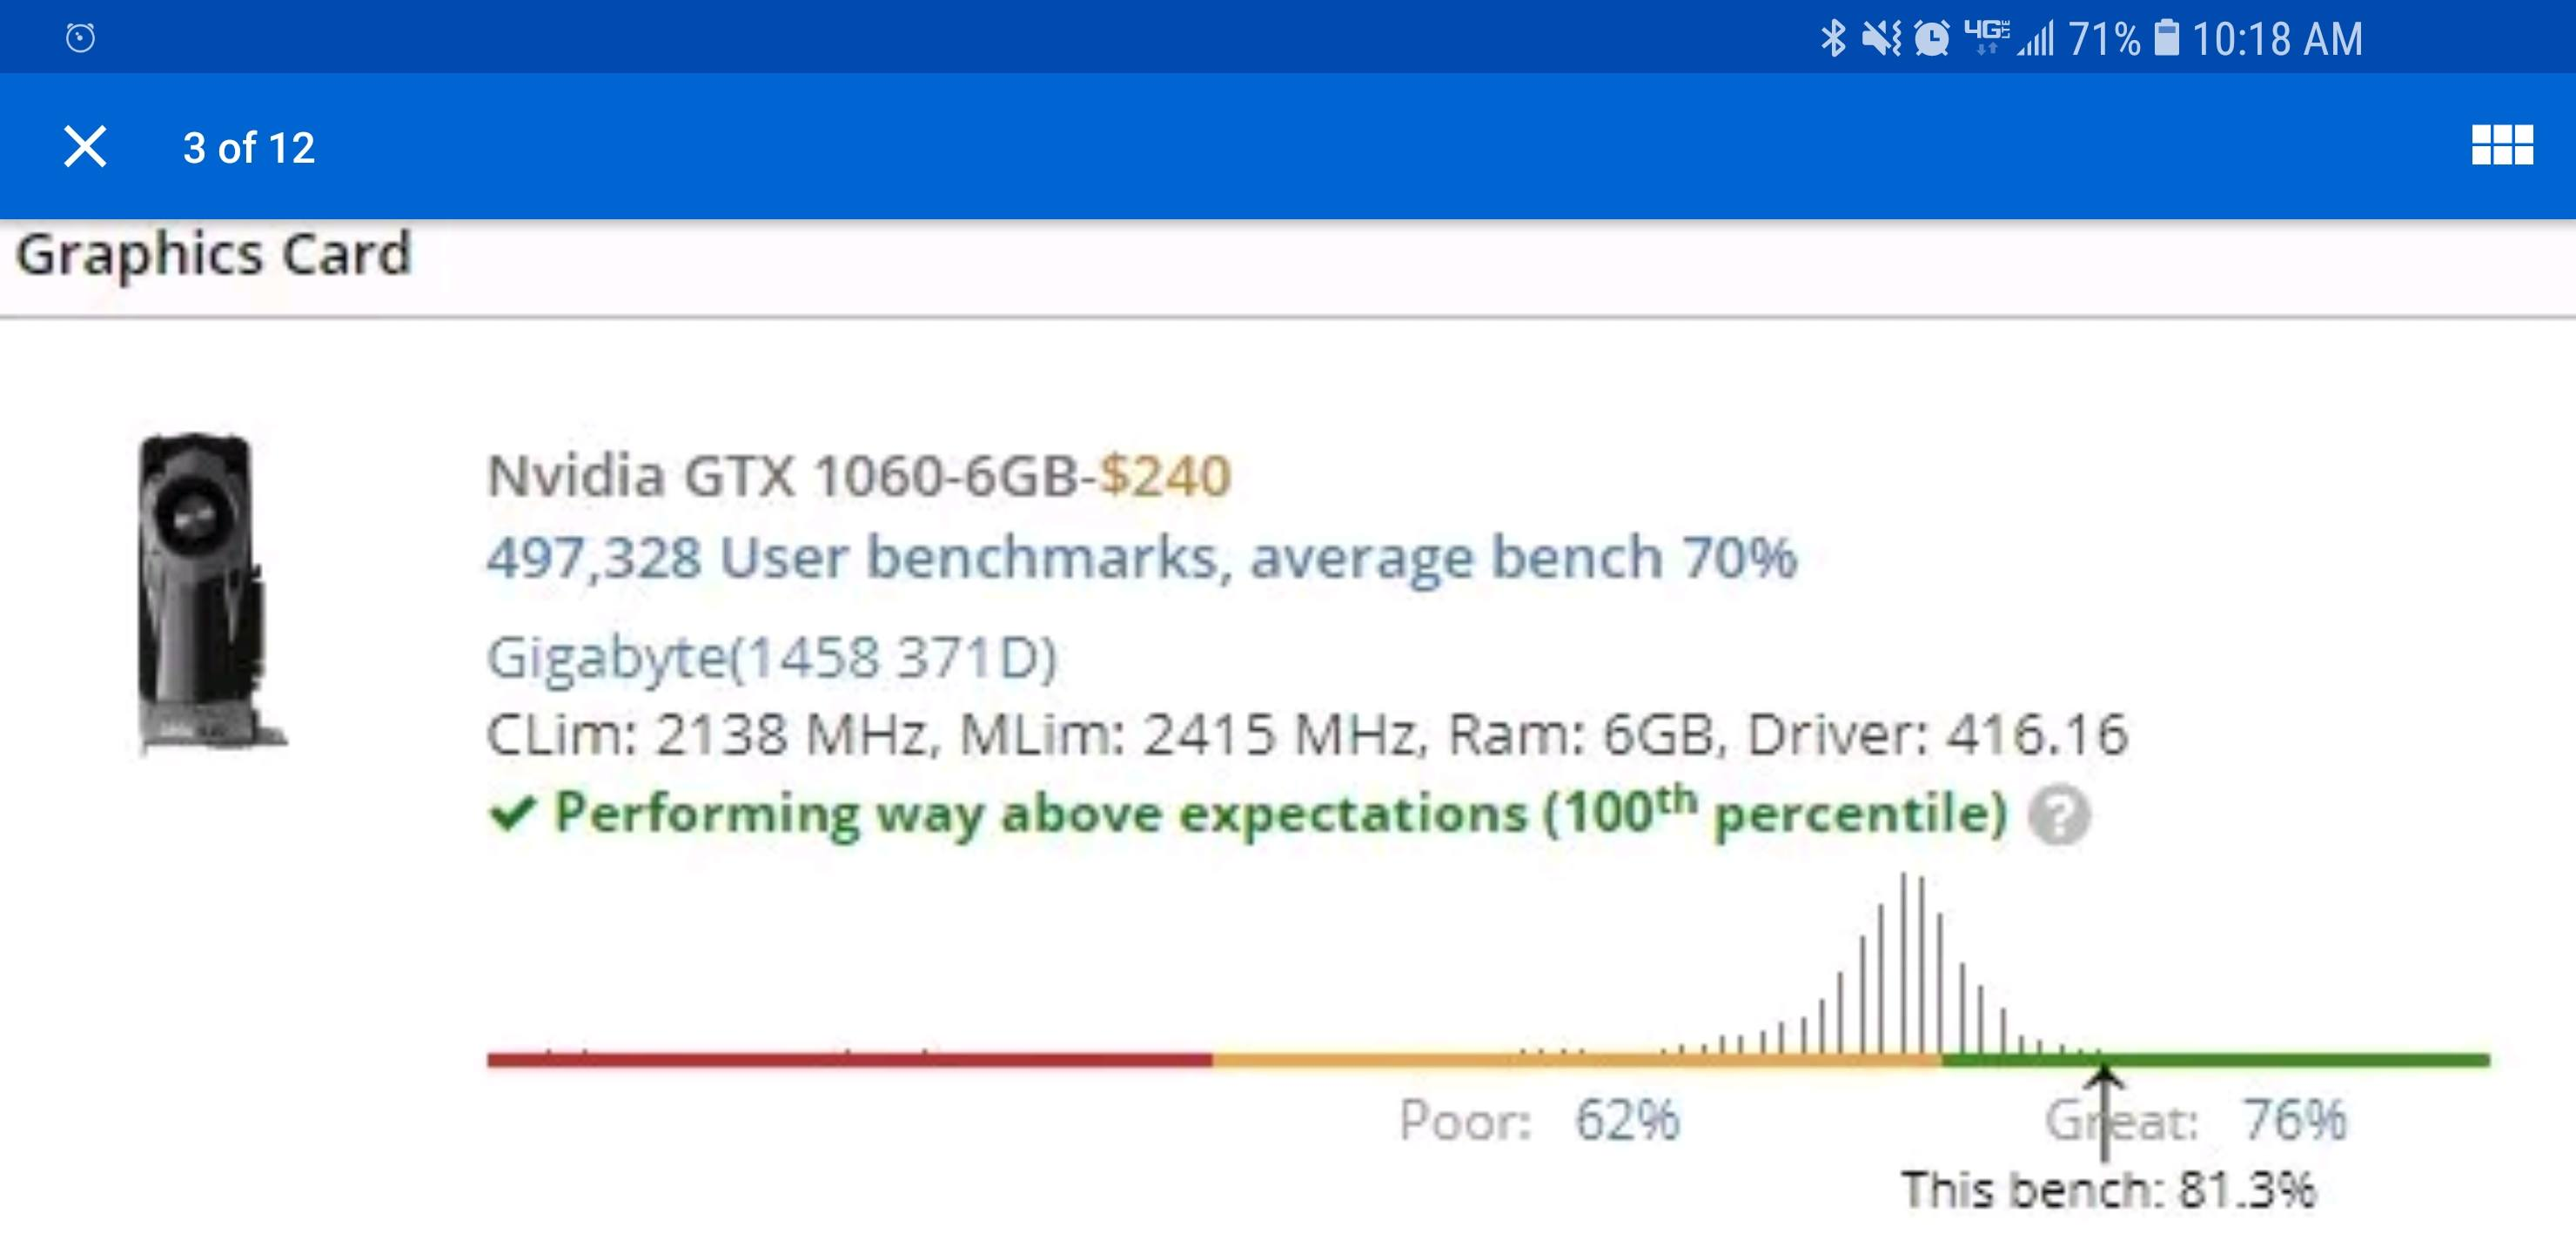 GTX 1060 6Gb Top 100% on Userbenchmark? - Graphics Cards - Linus